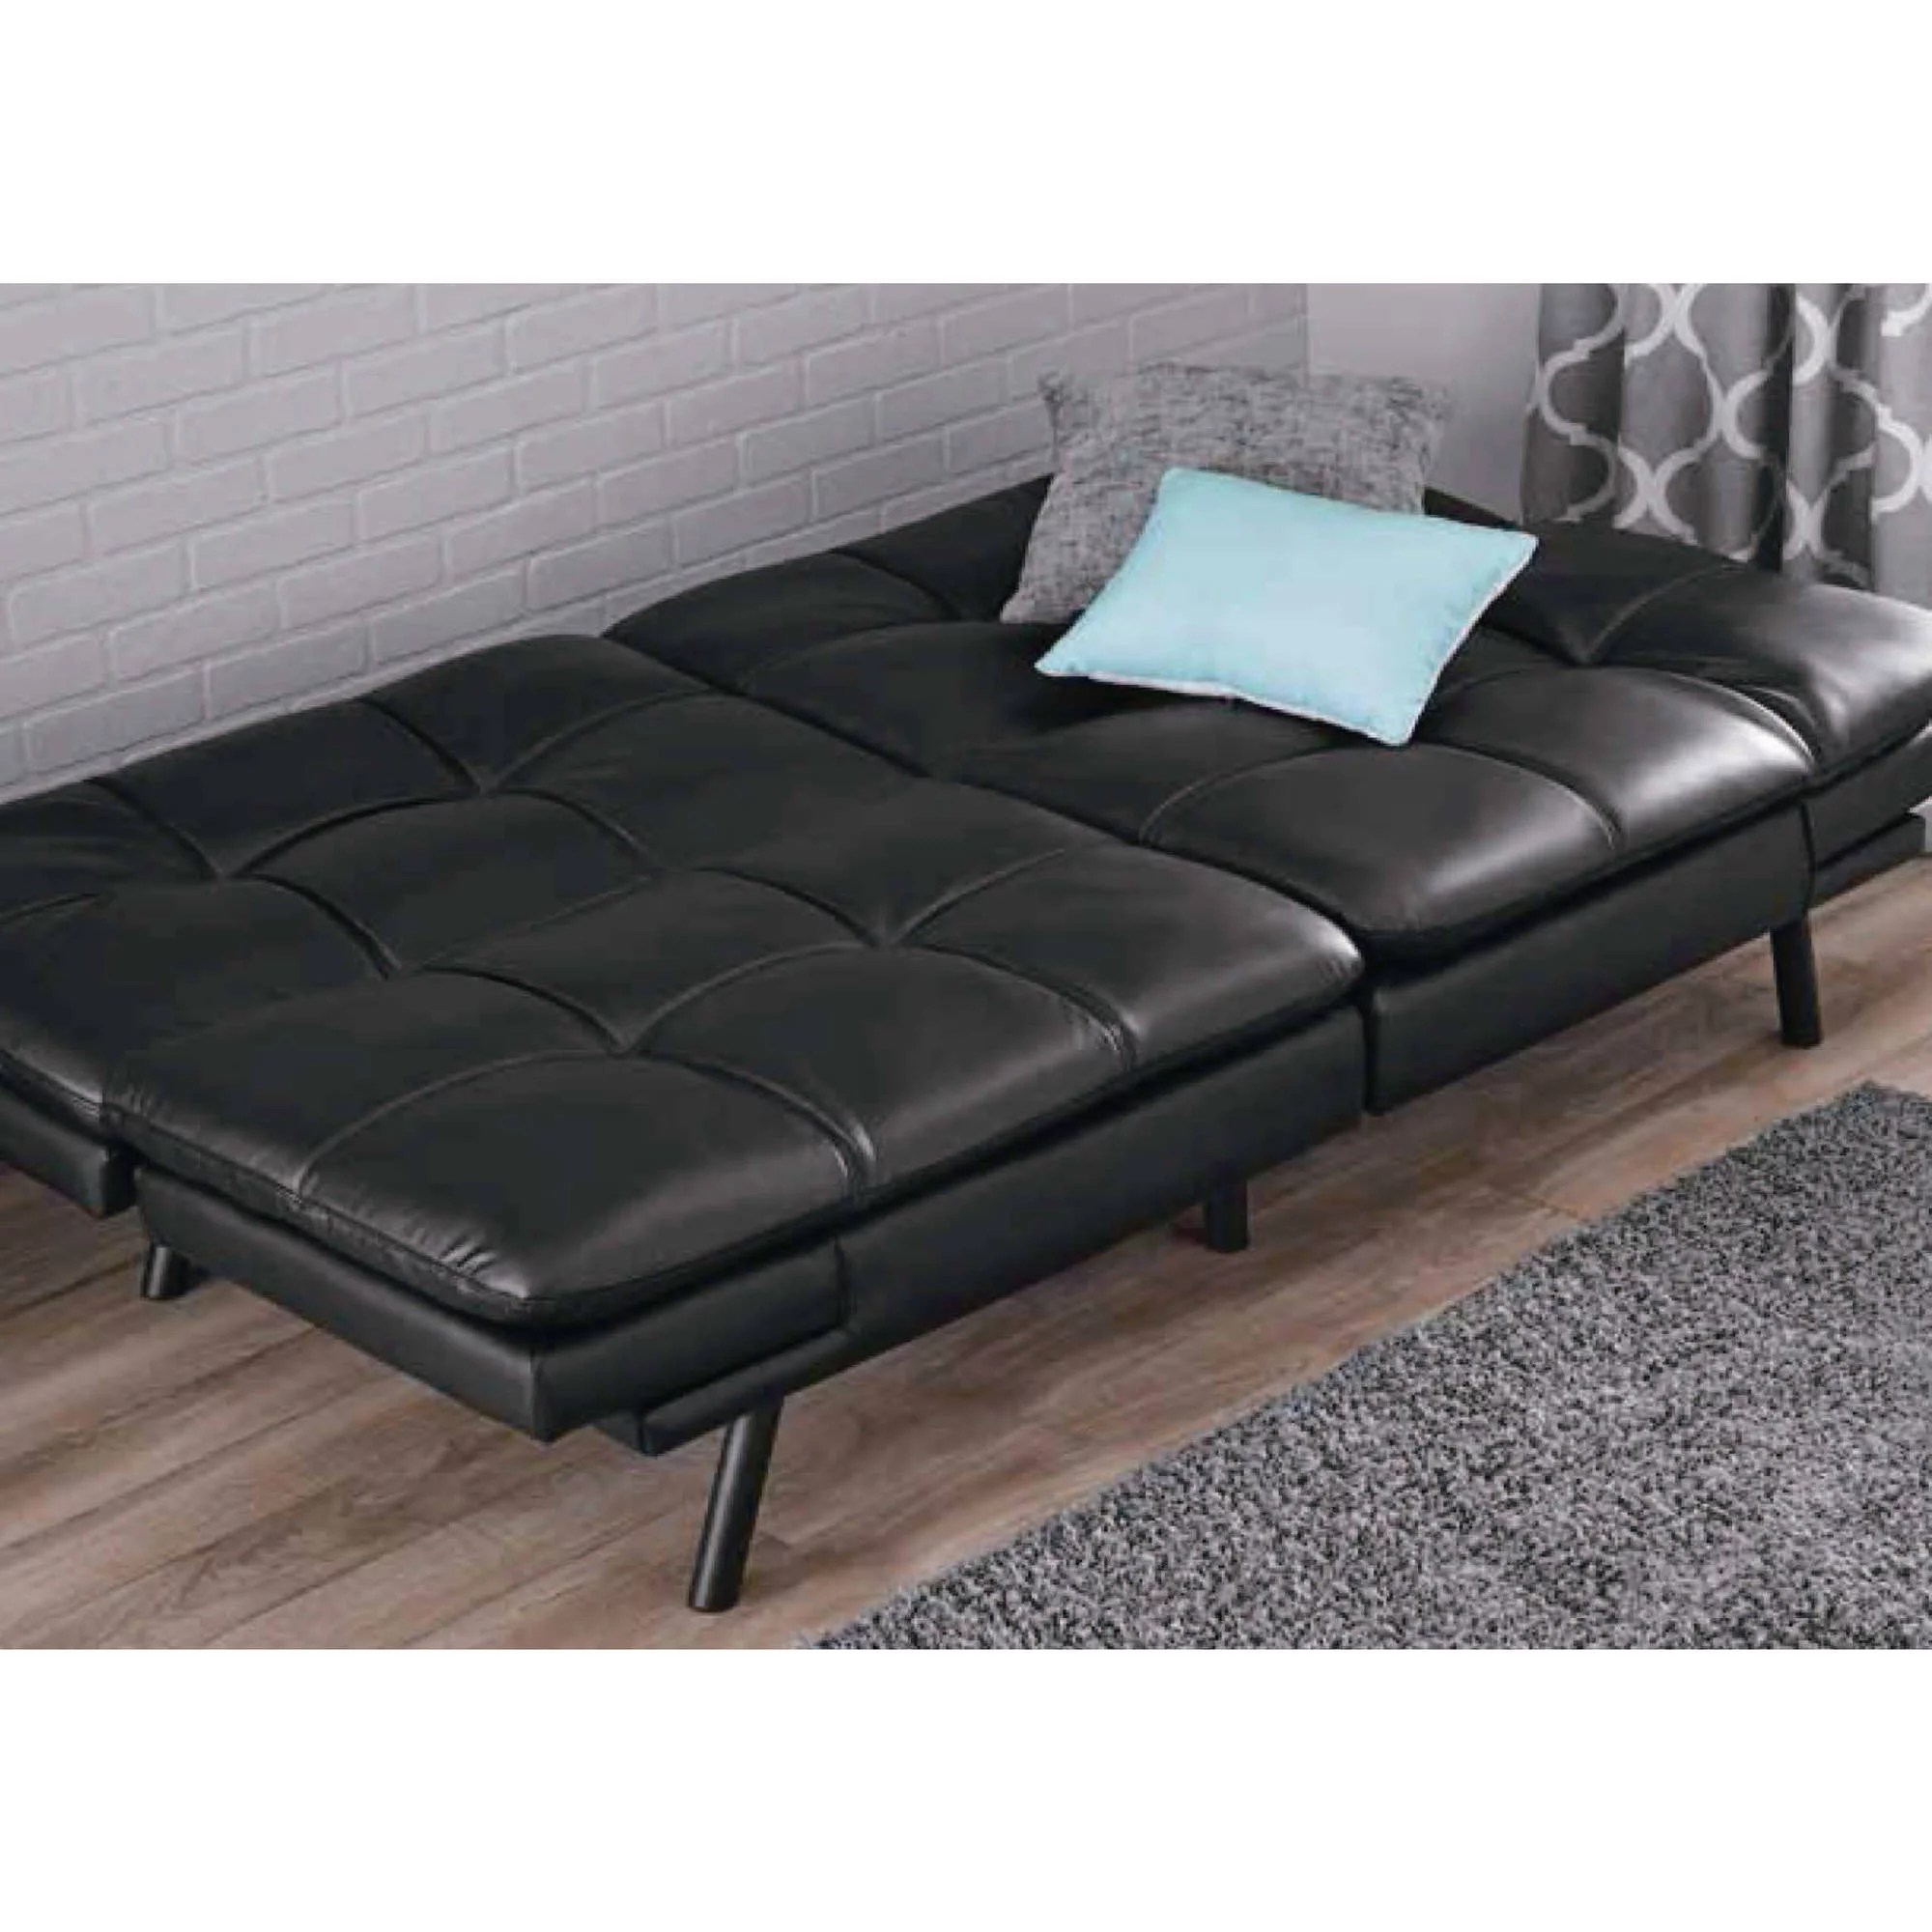 mainstays sofa sleeper with memory foam 3 cushion bed mattress home